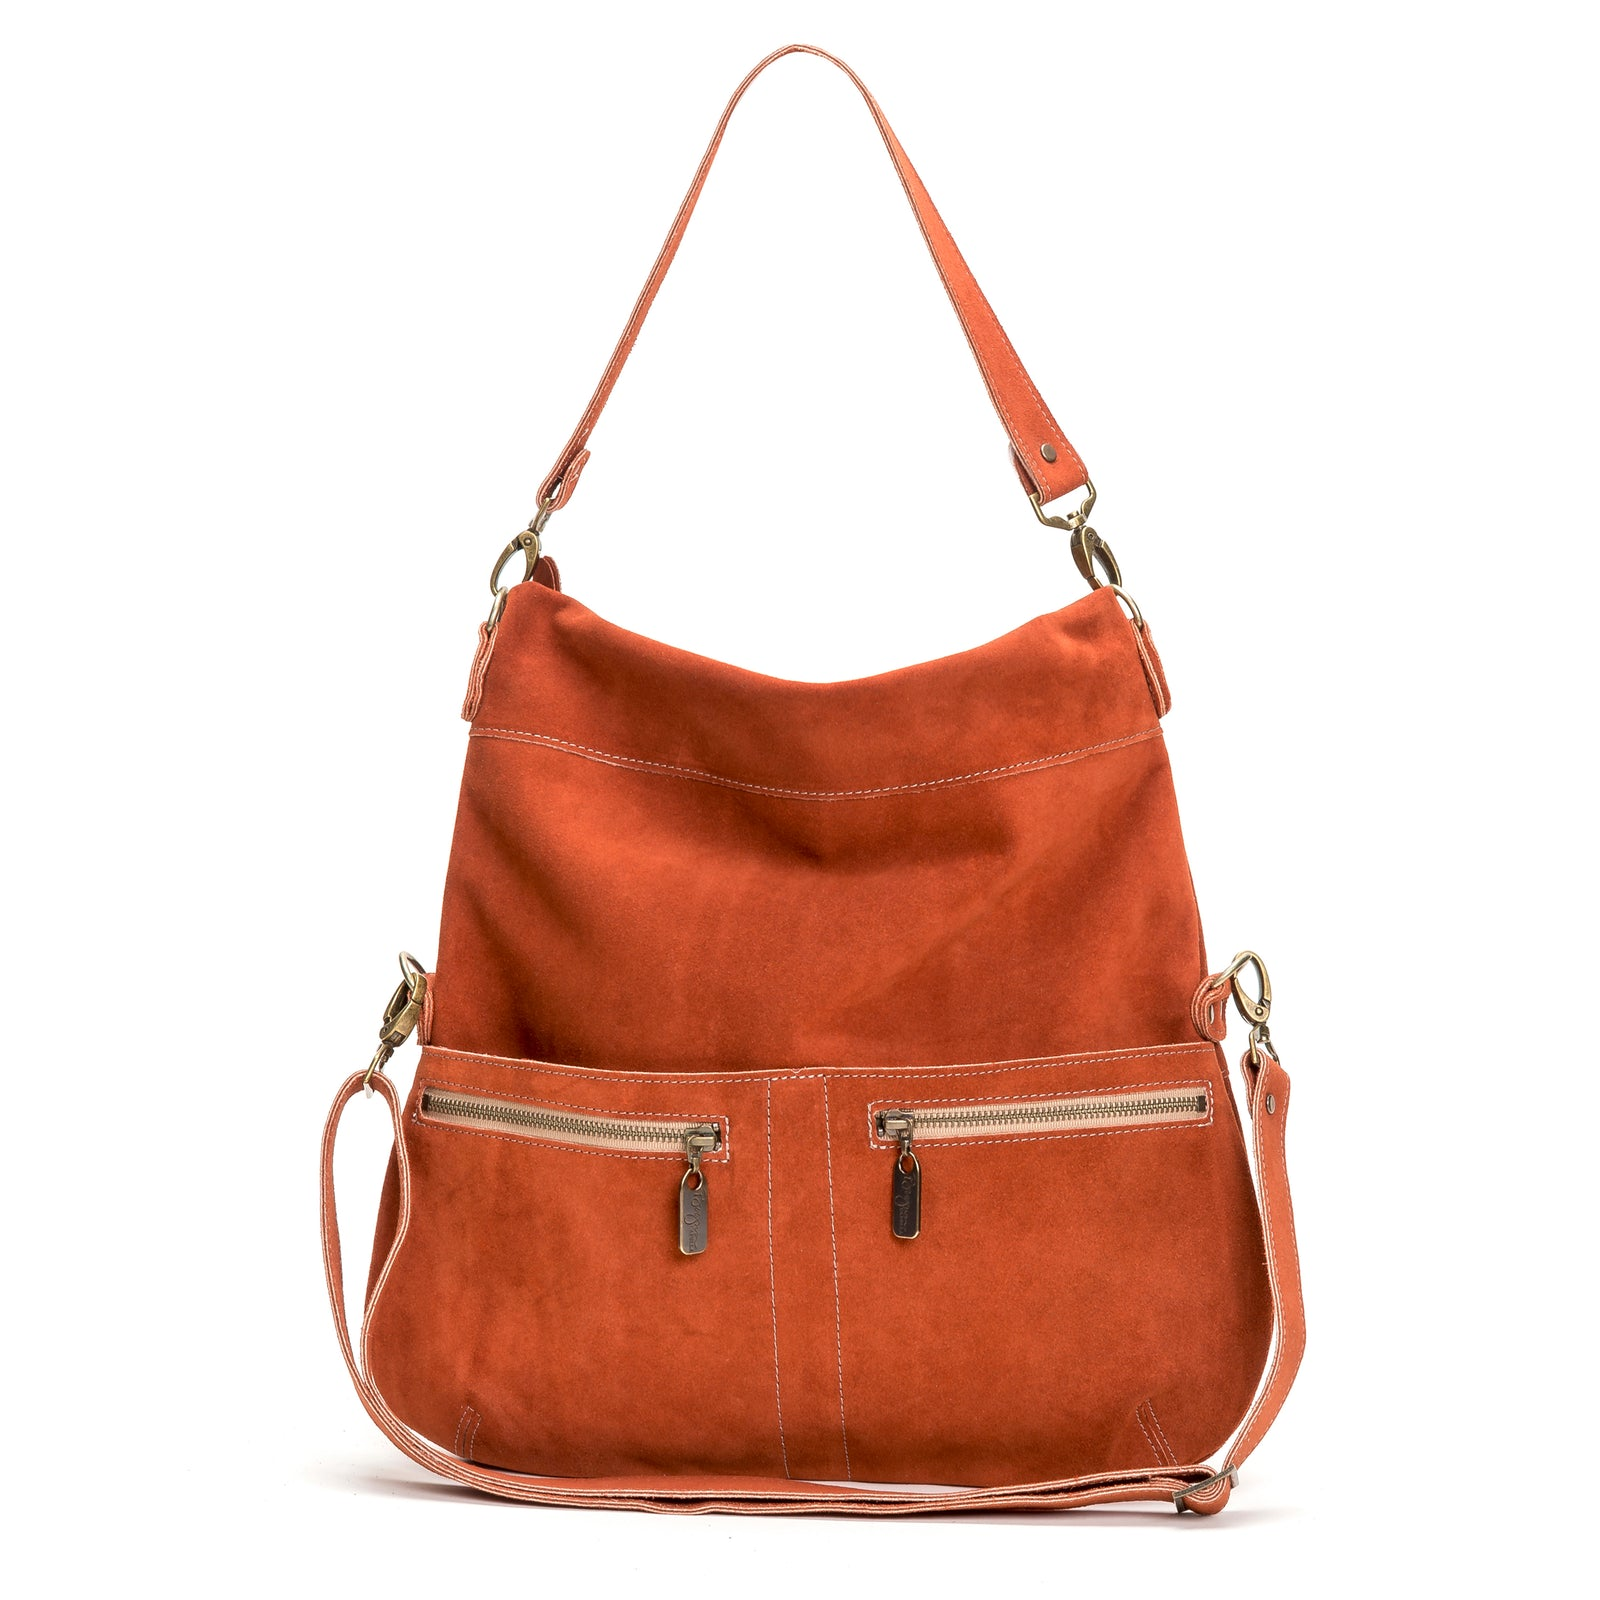 Lauren Crossbody - Cinnamon - Brynn Capella, Large Crossbody